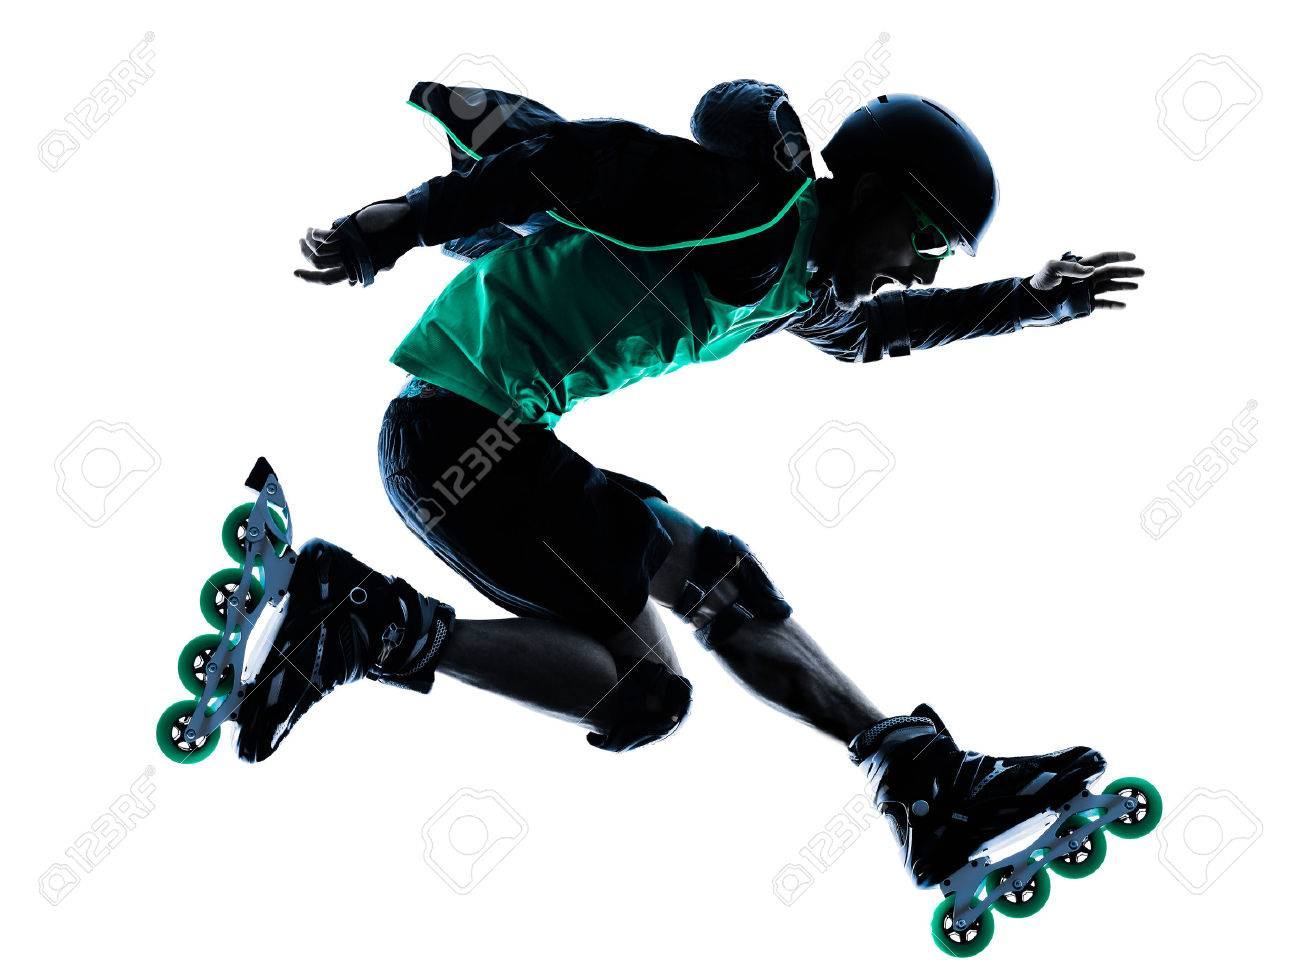 one caucasian man Roller Skater inline Roller Blading in silhouette  isolated on white background Stock Photo